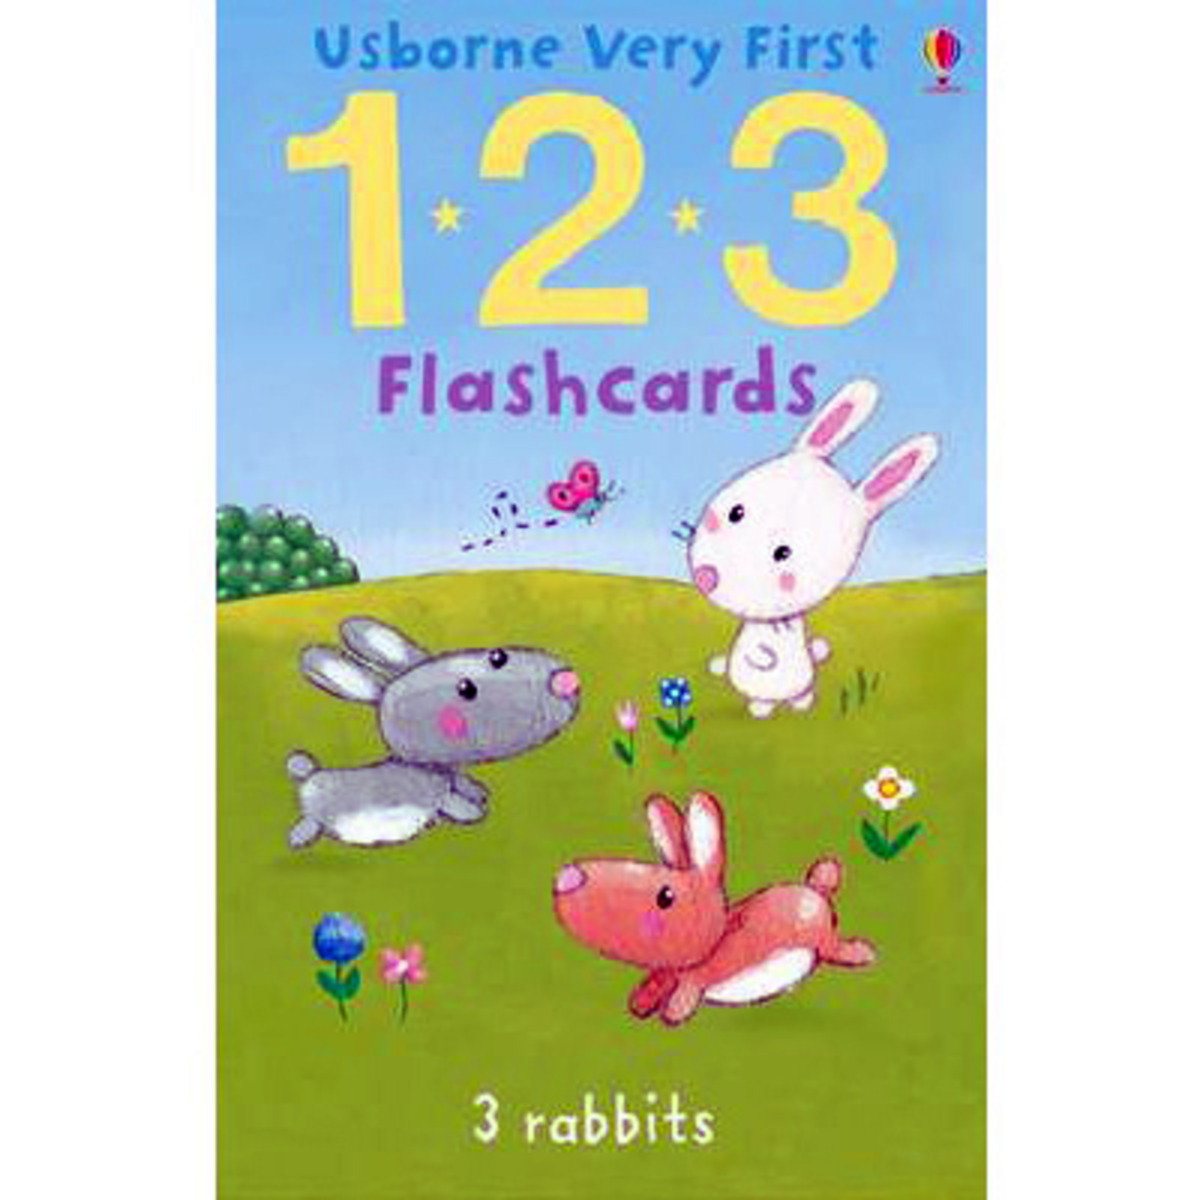 Very First Flashcards 123